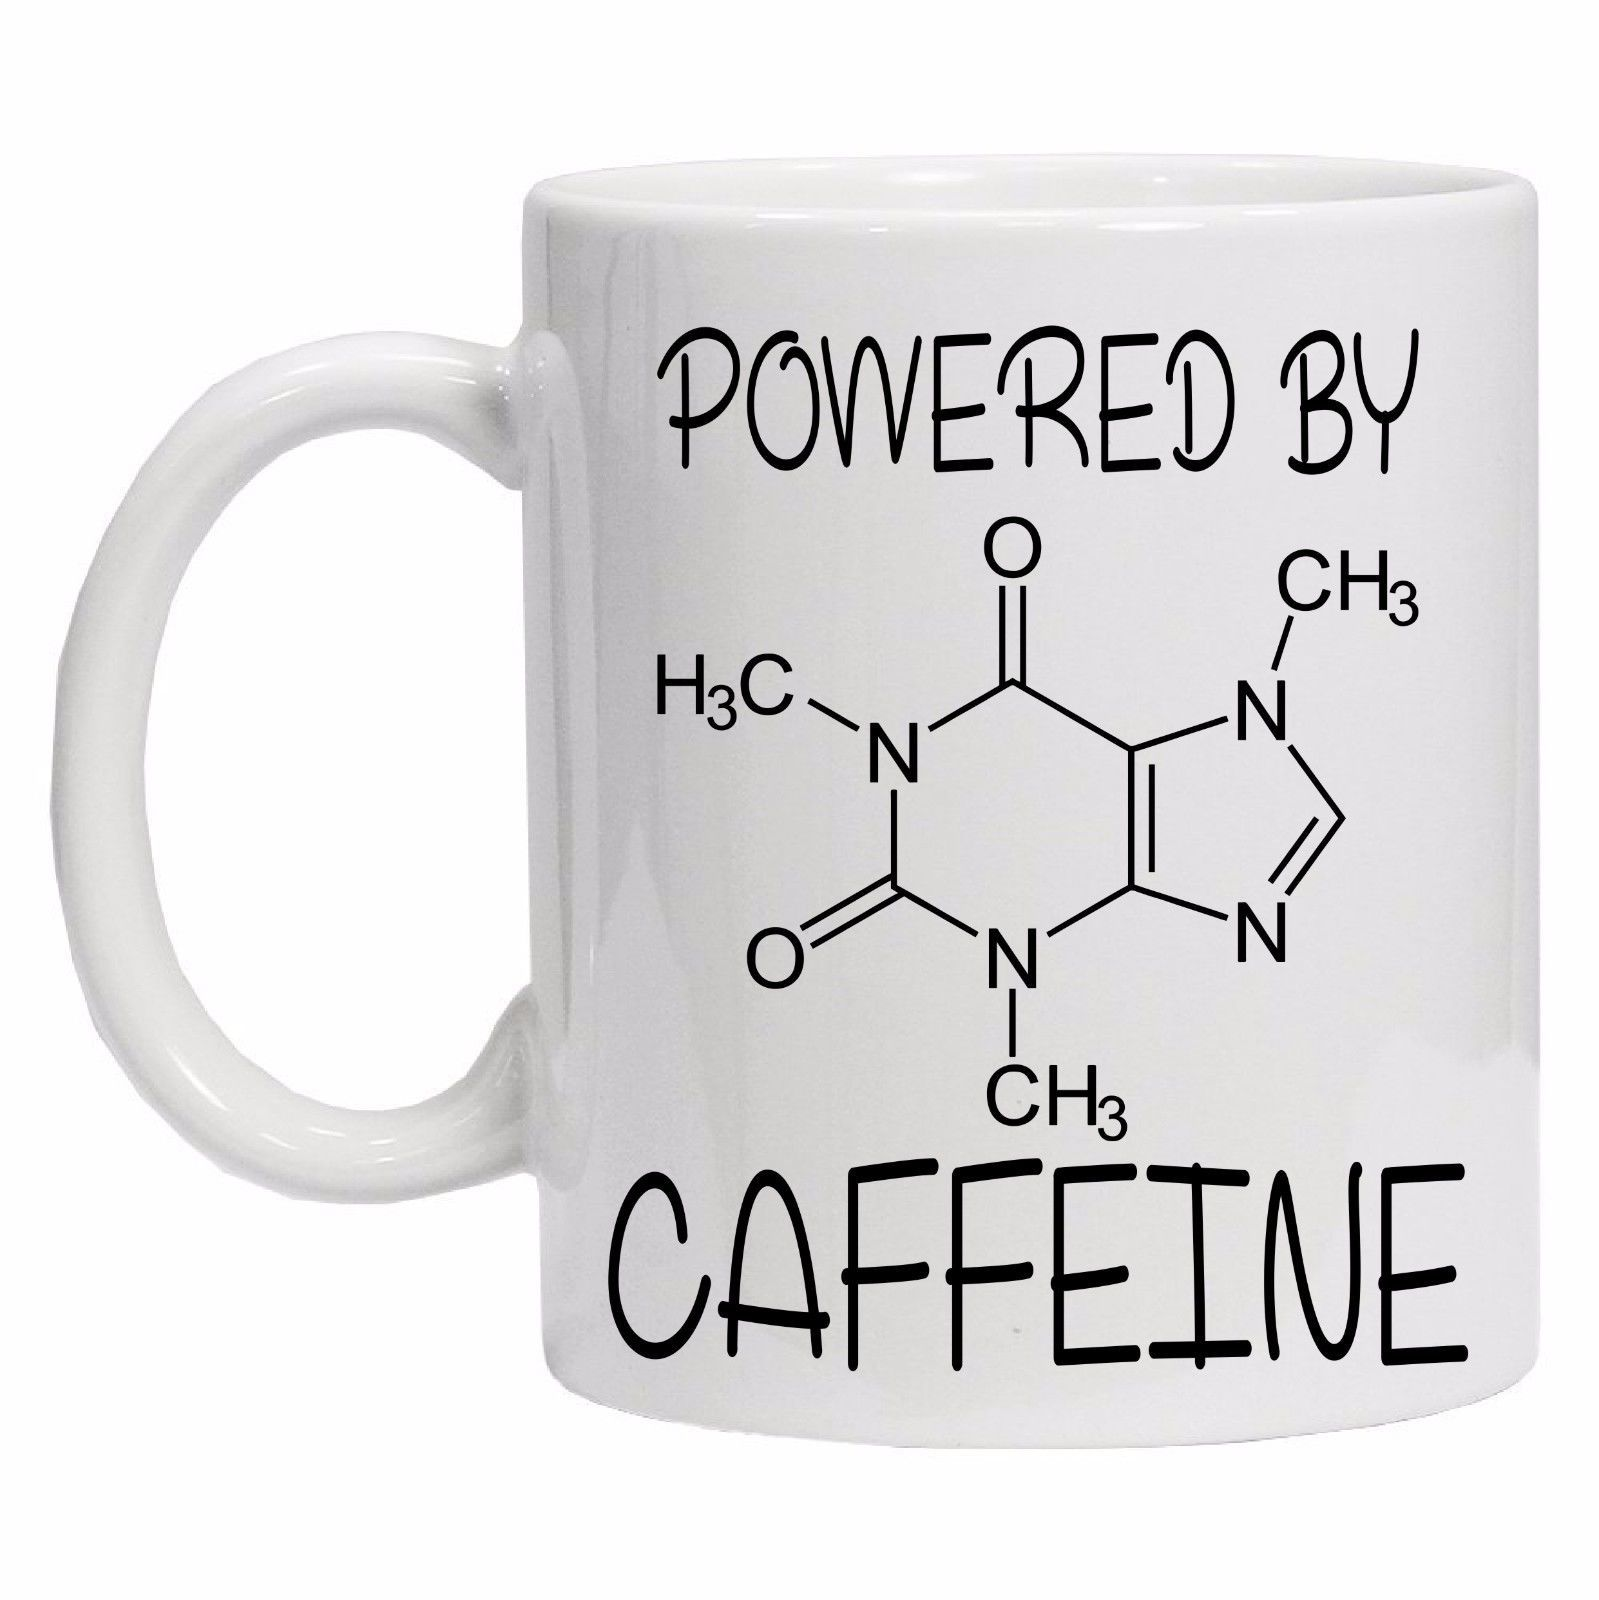 Powered By Caffeine Mug - TEROF